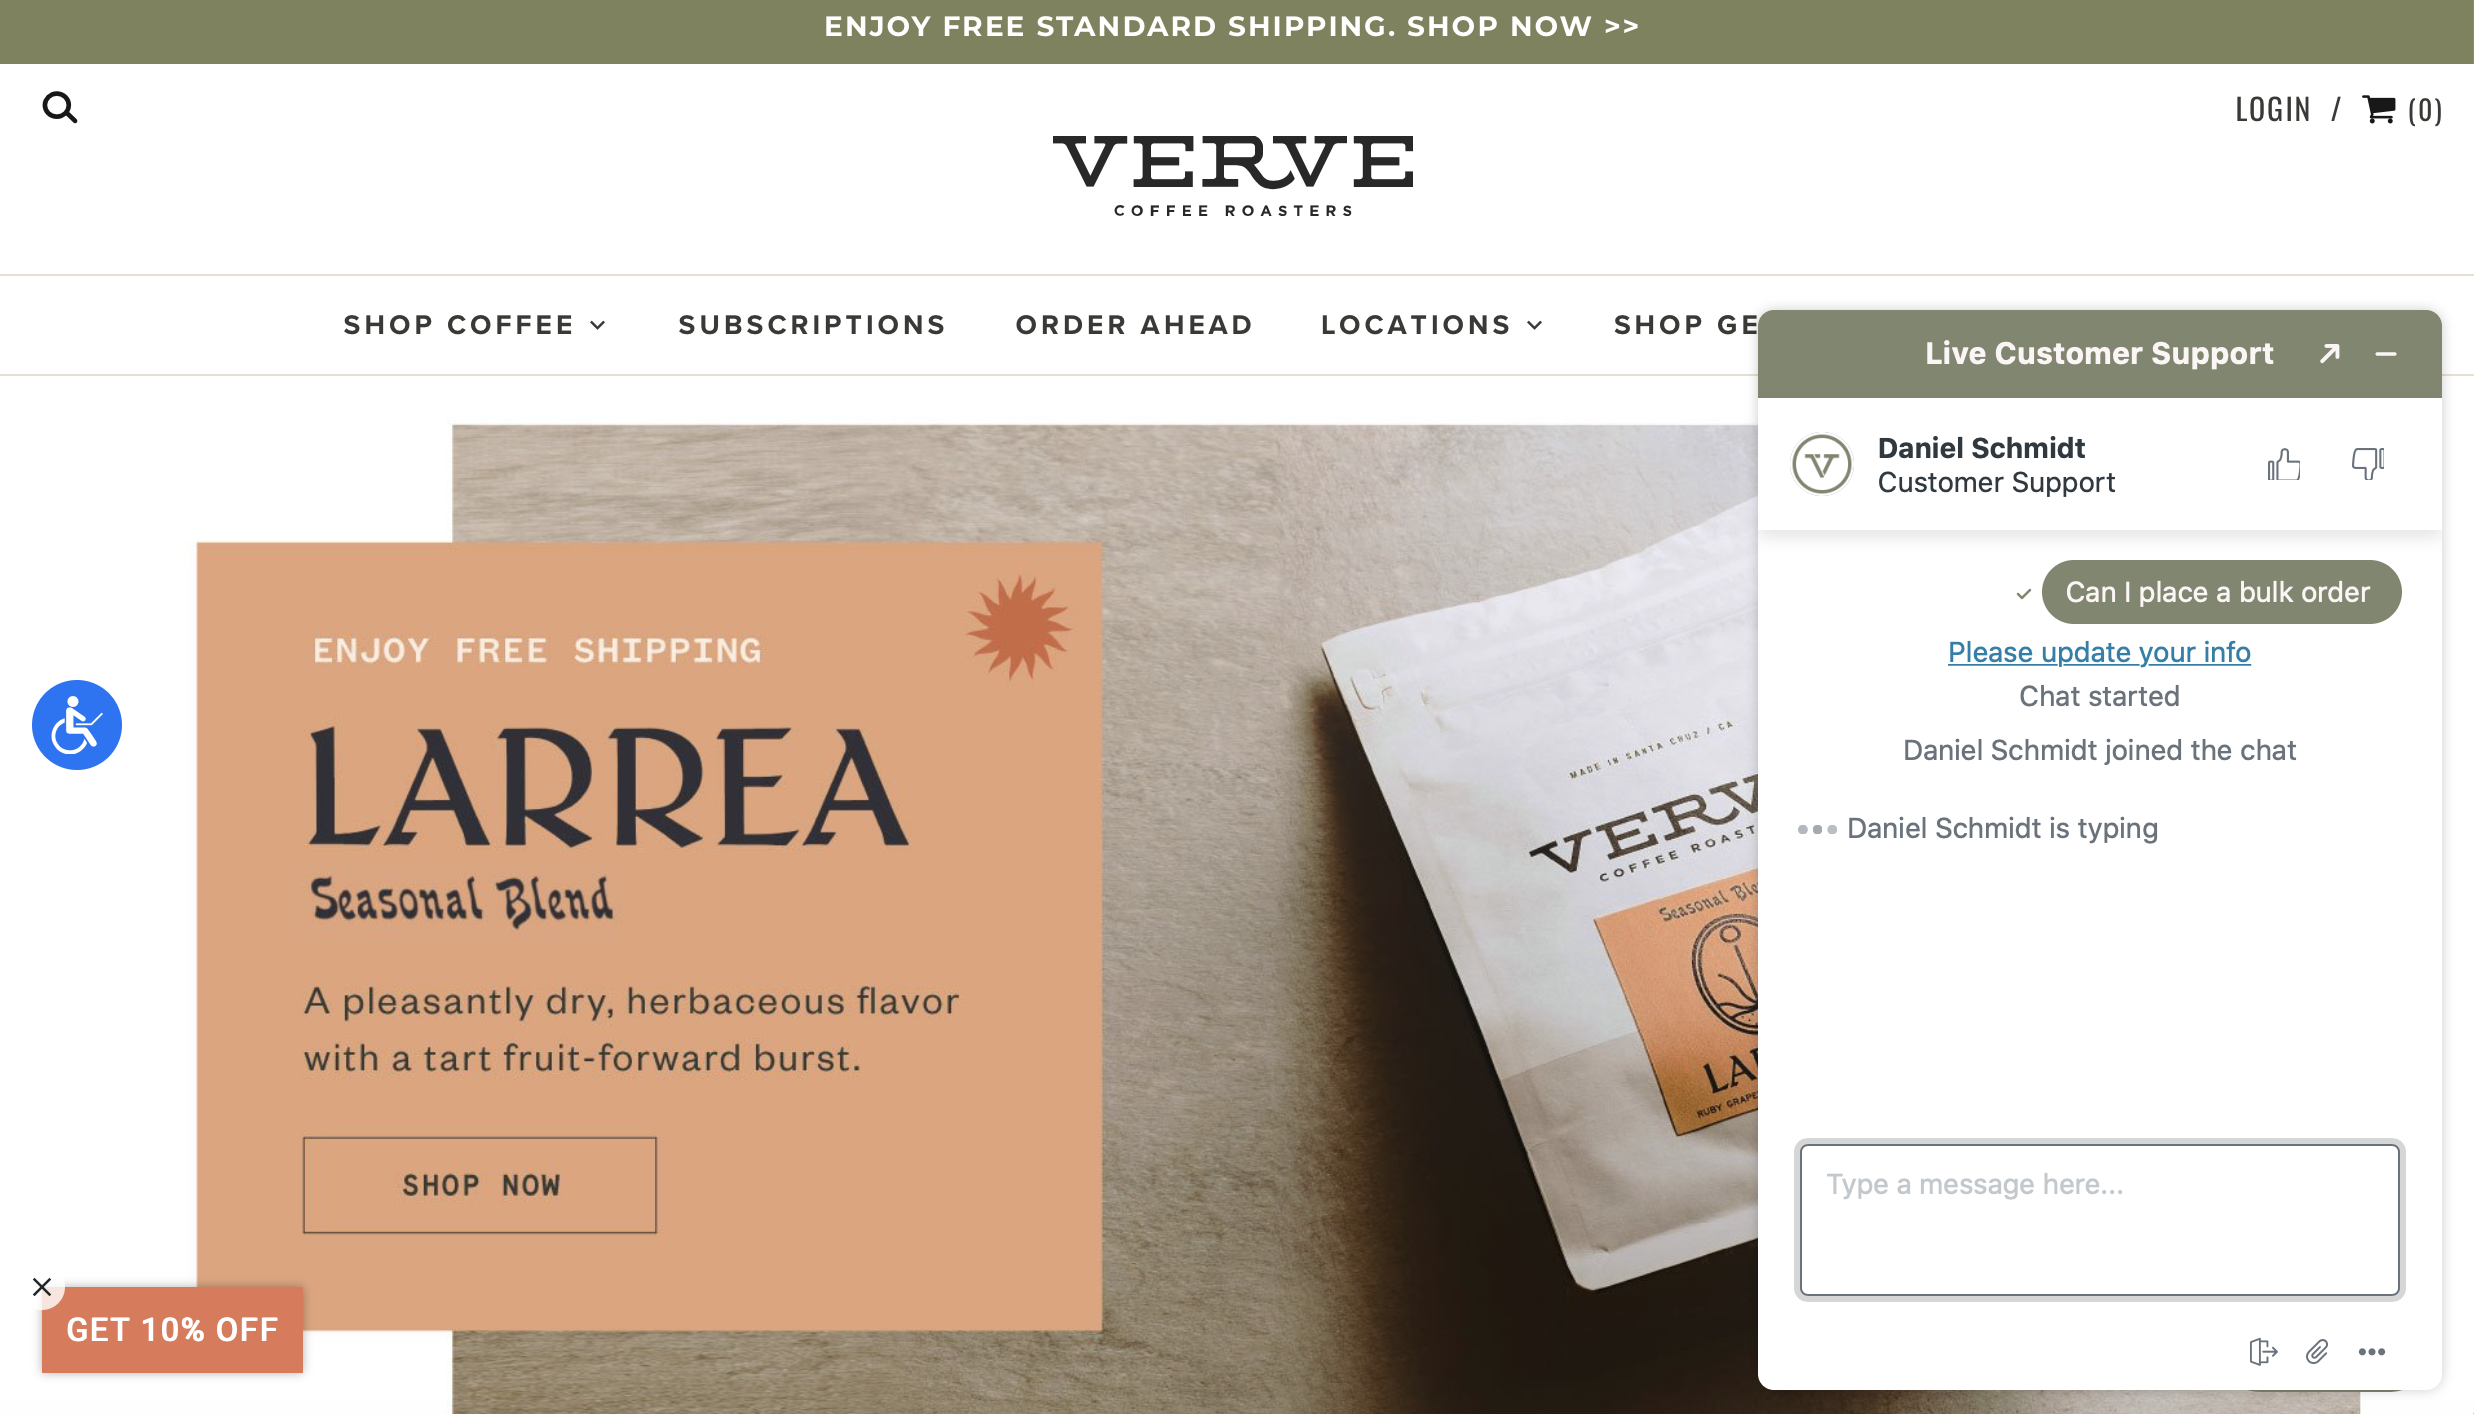 Verve Coffee is one of the best shopify stores